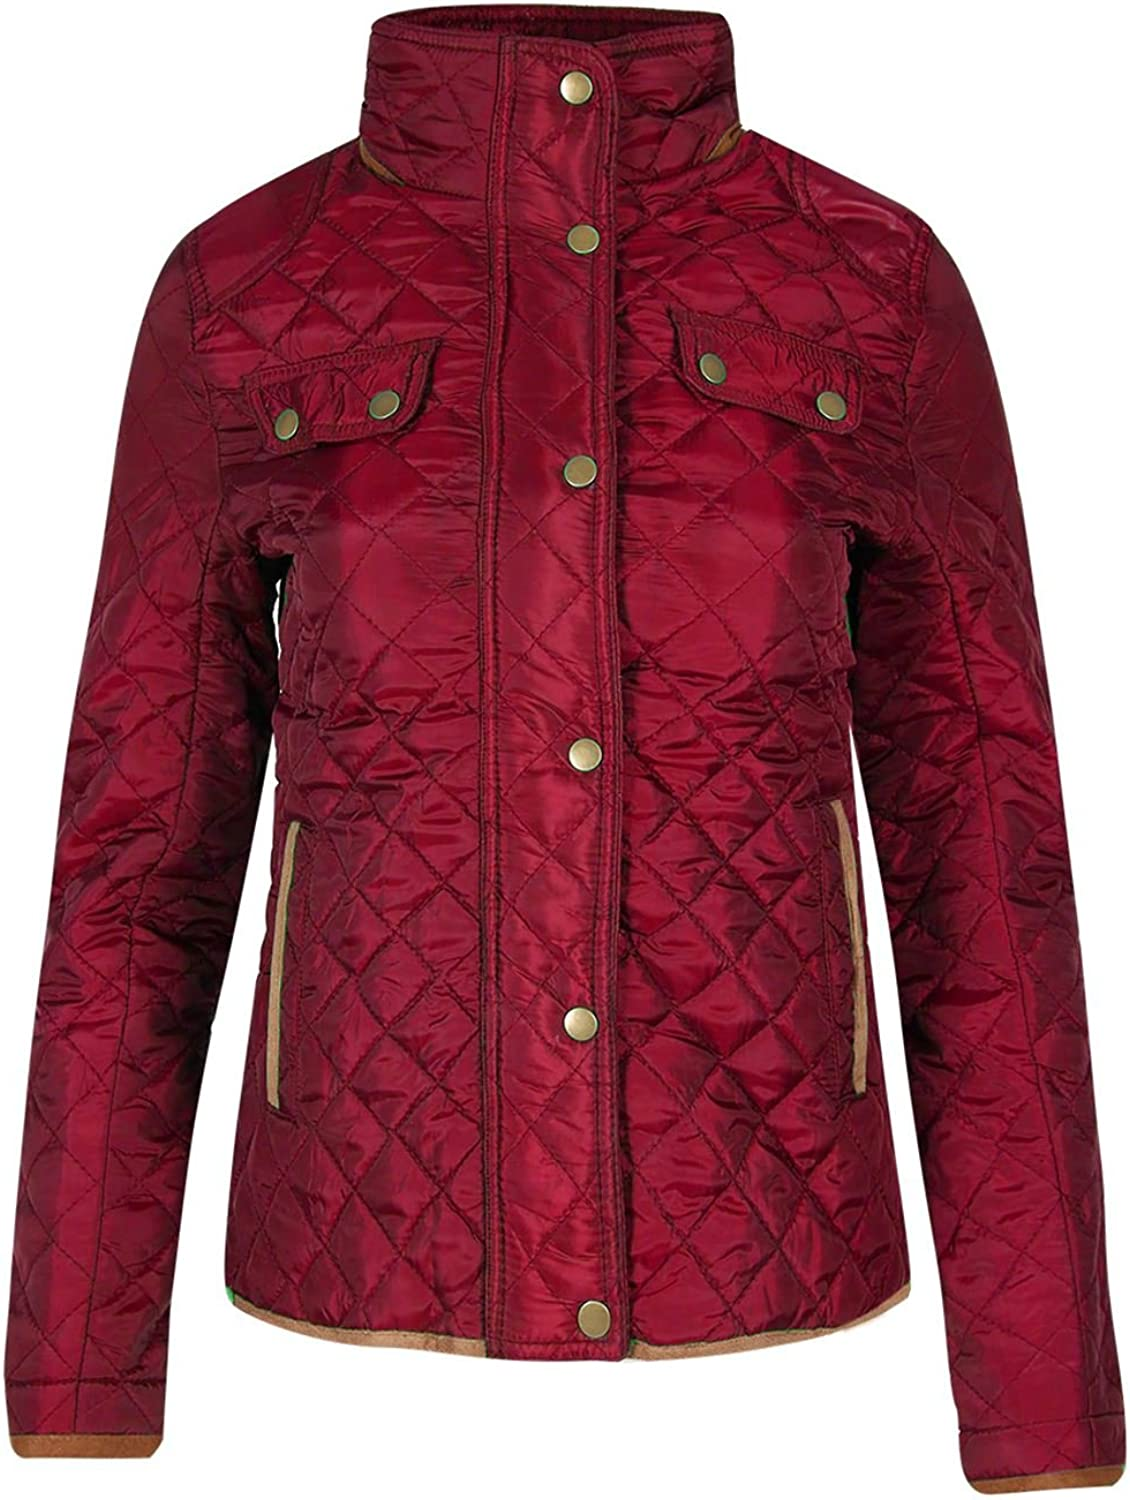 Be Jealous Womens Ladies Quilted Button Thick Warm Winter Elbow Patches Funnel Neck Jacket UK Plus Size 10-28